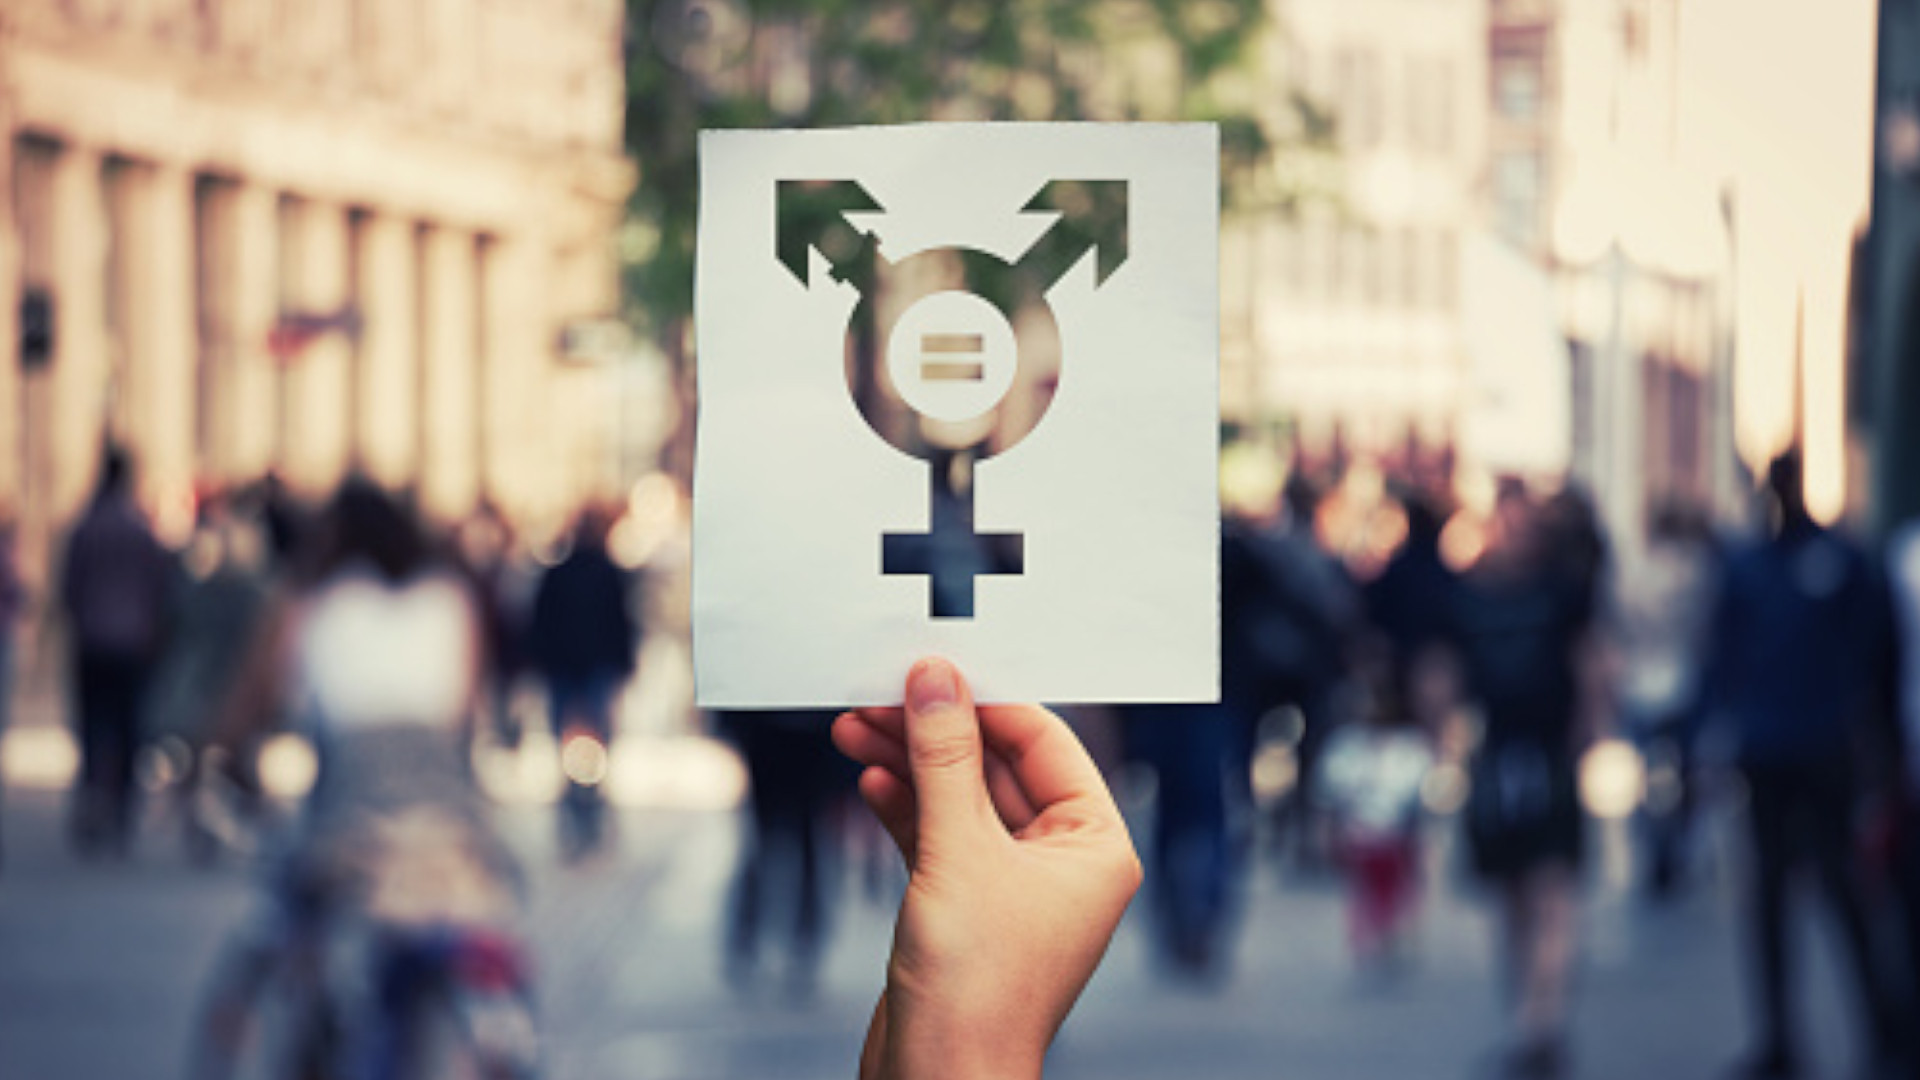 Top court rules rules in favor of trans woman's name change request